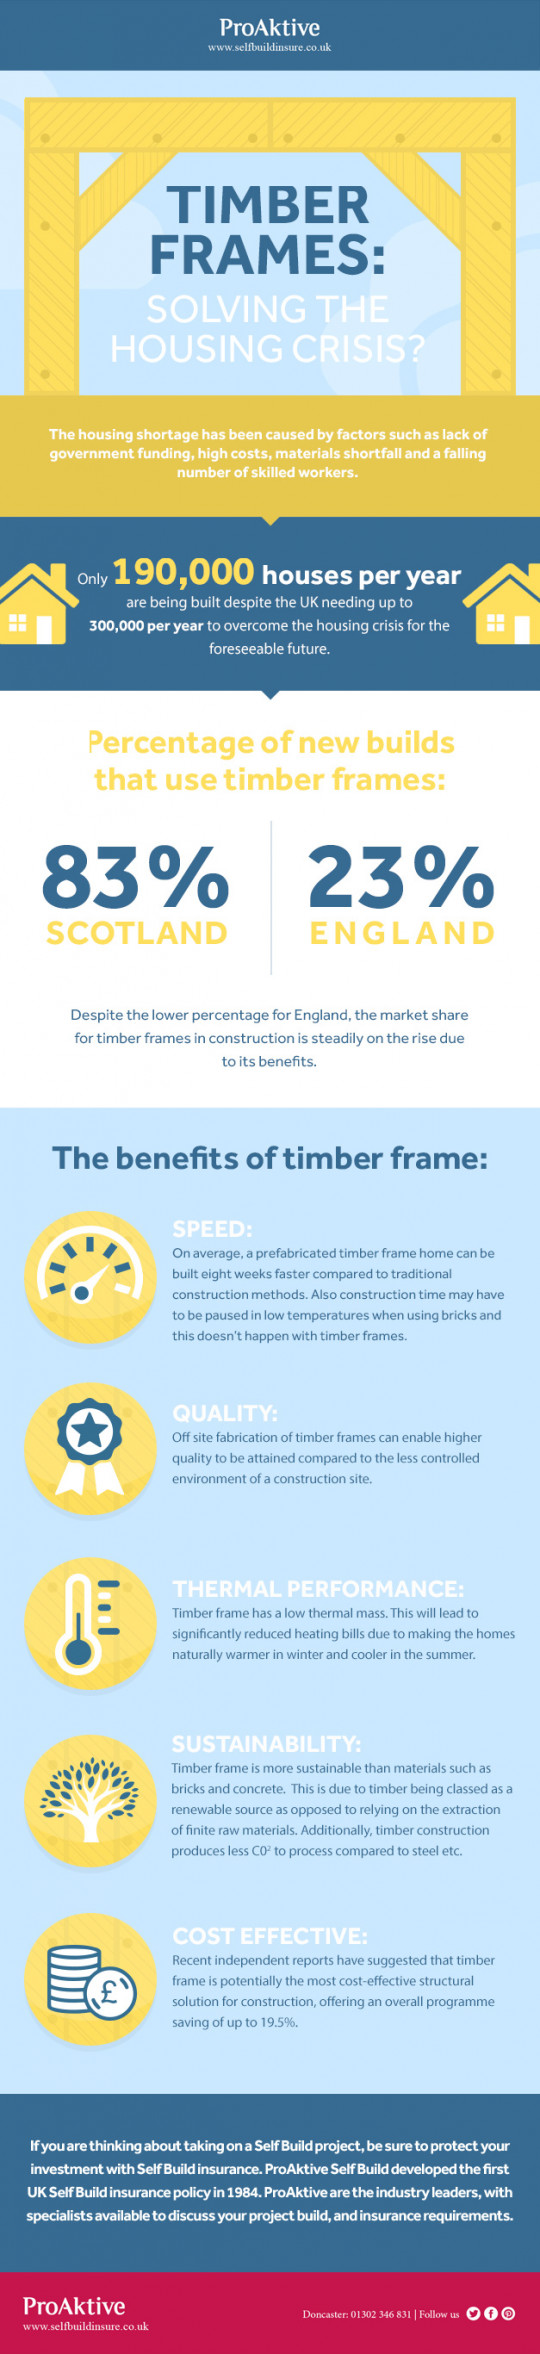 Timber Frames: Solving the Housing Crisis?